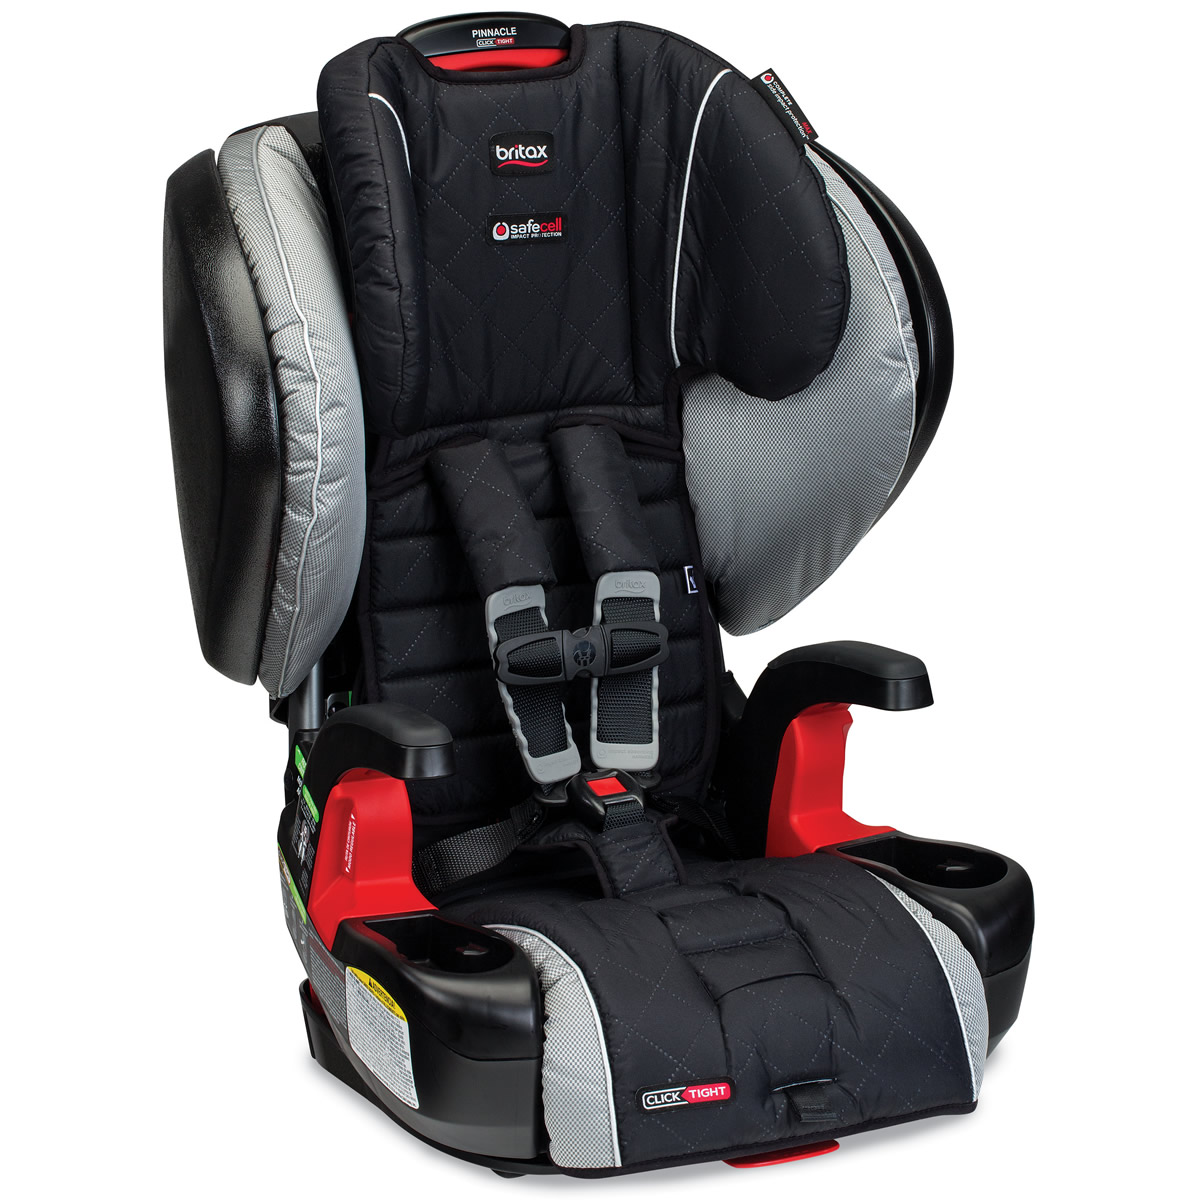 Britax Pinnacle ClickTight Booster Car Seat - Manhattan